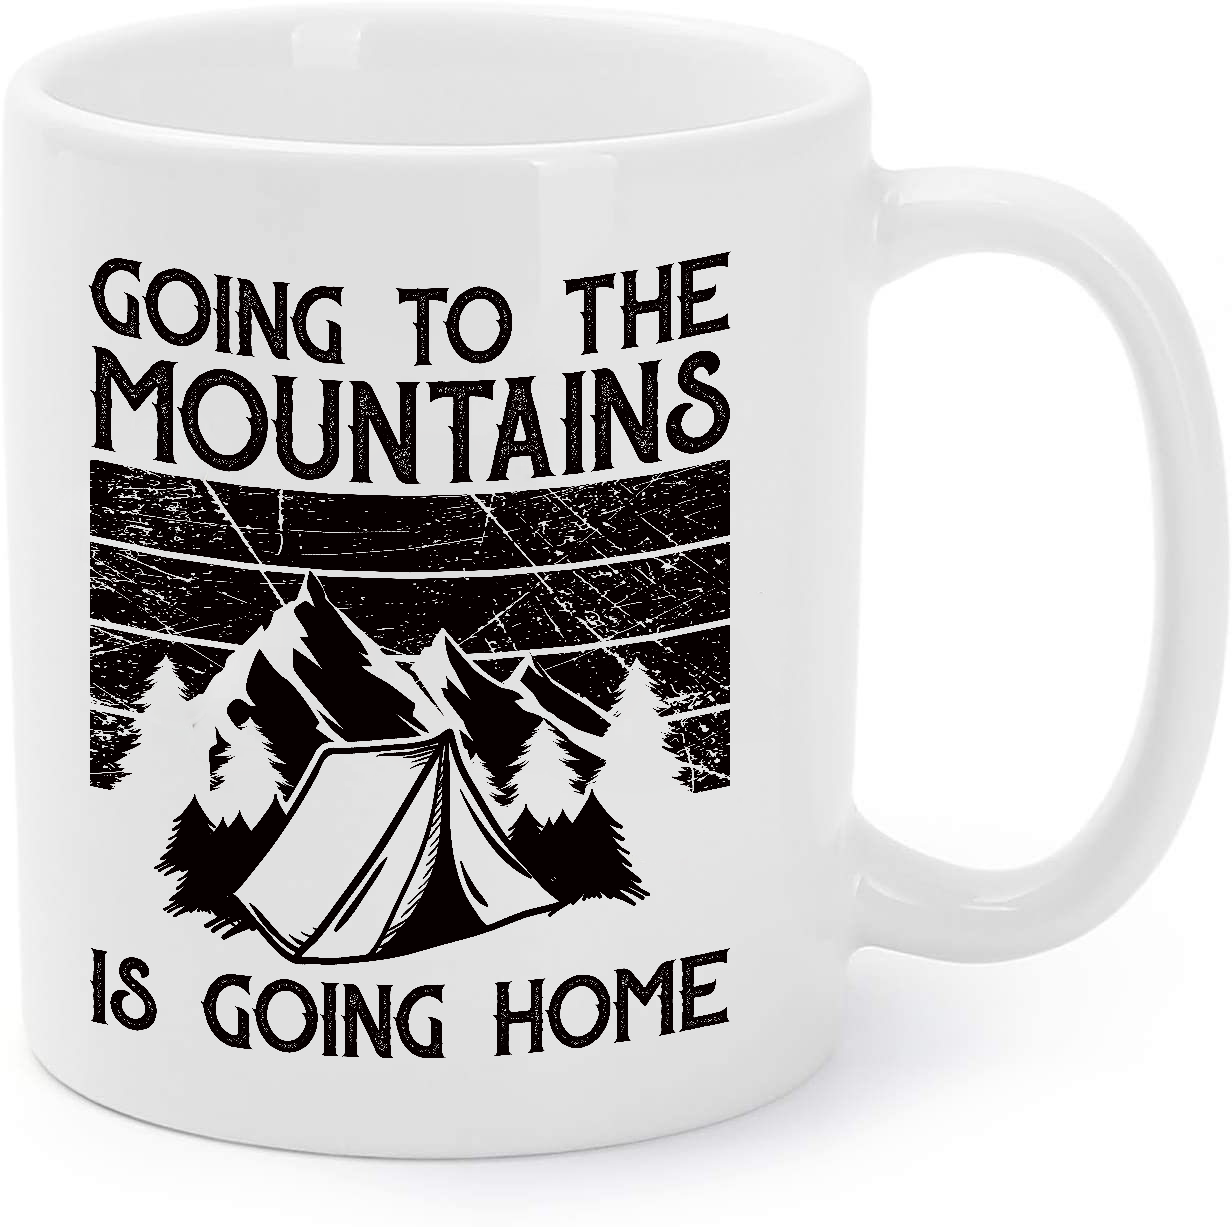 Primary image for Going To The Mountains - Camping Gift Coffee Mug